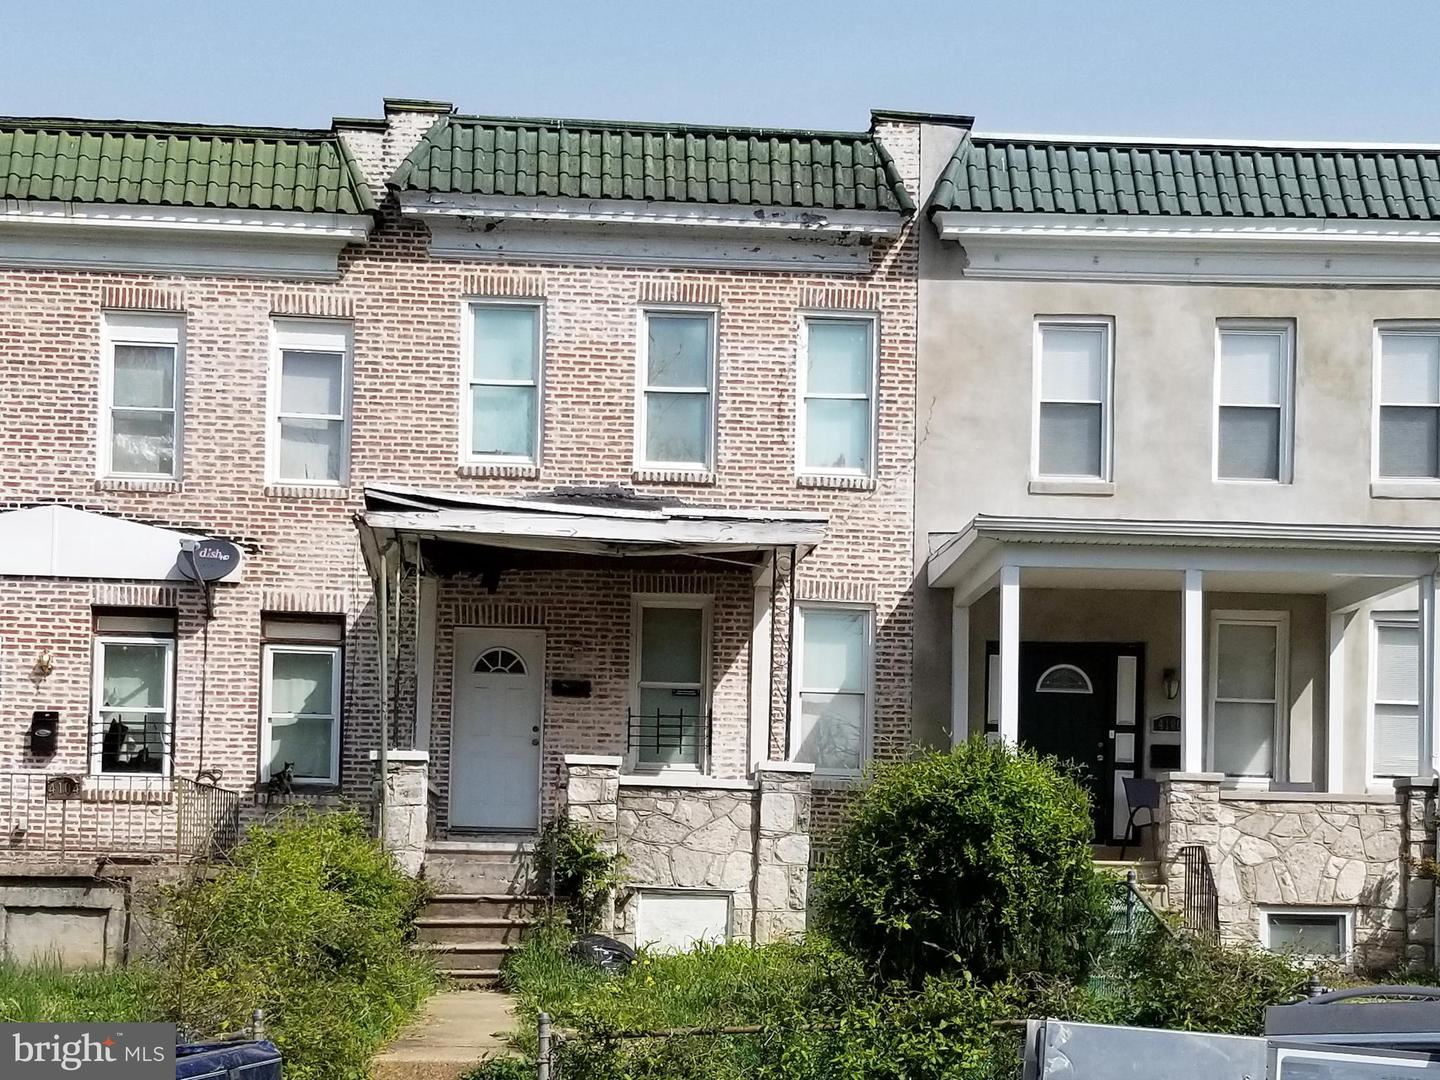 4102 FAIRVIEW AVE, Baltimore, MD 21216 - MLS#: MDBA550020